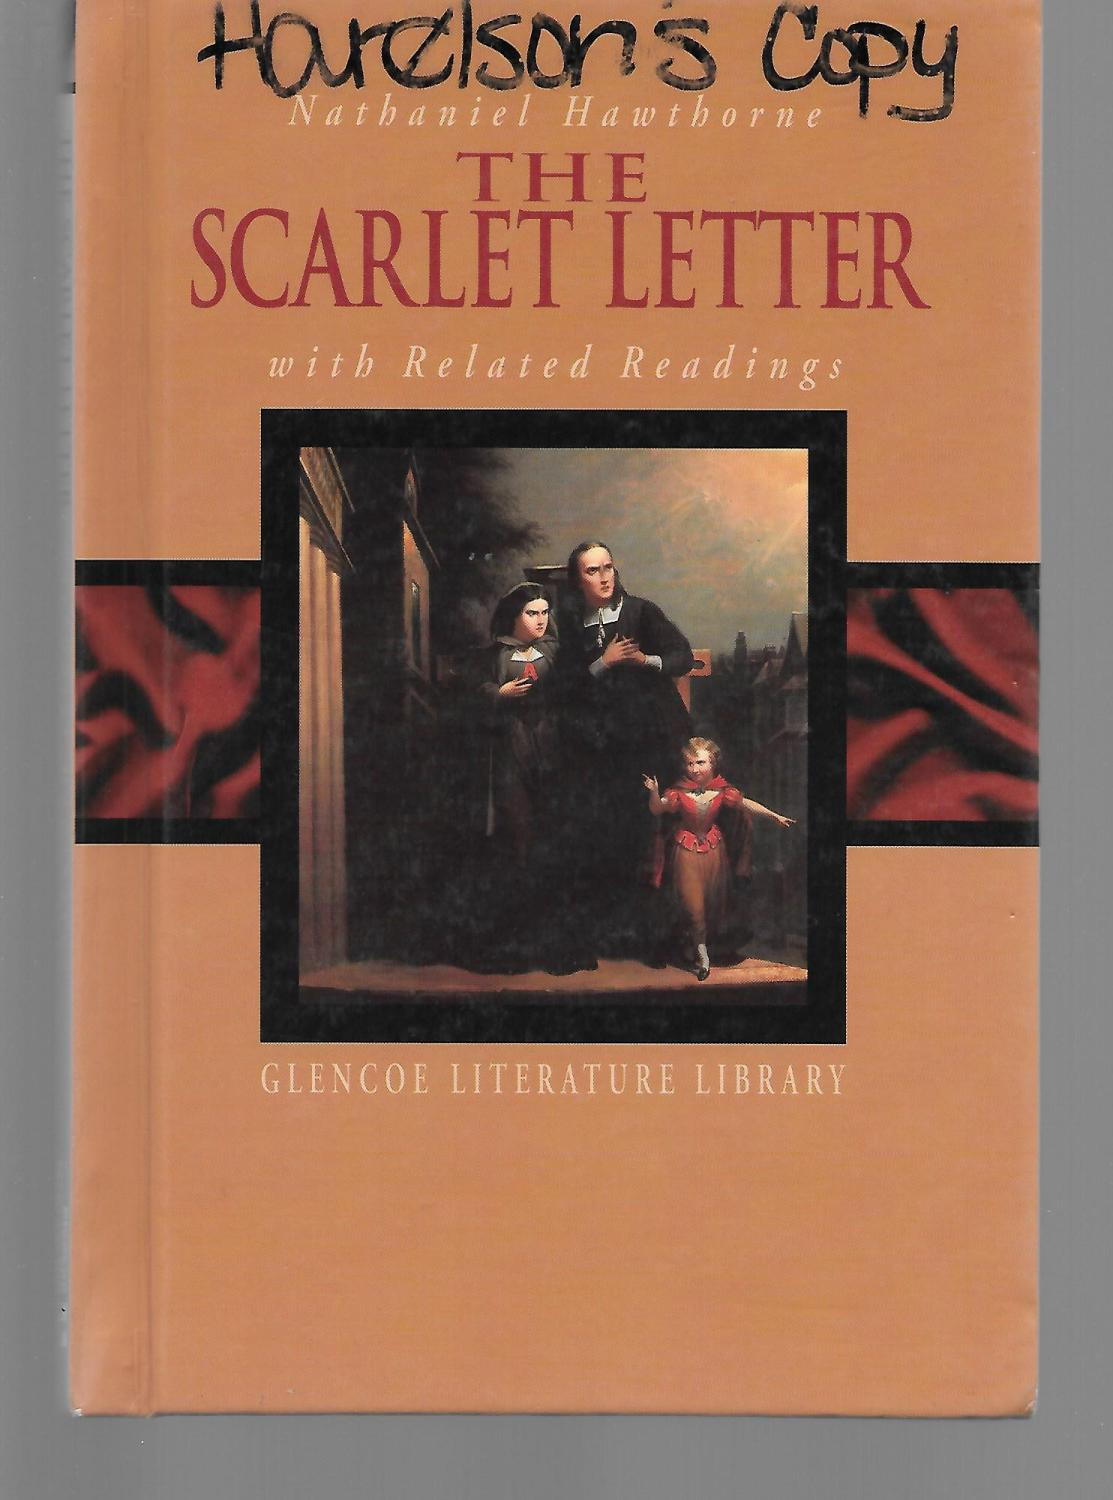 a literary comparison of catch 22 by joseph heller and the scarlet letter by nathaniel hawthorne The scarlet letter, by nathaniel hawthorne and important literary devices enables nathaniel hawthorne in the scarlet letter to the novelguidecom is the.